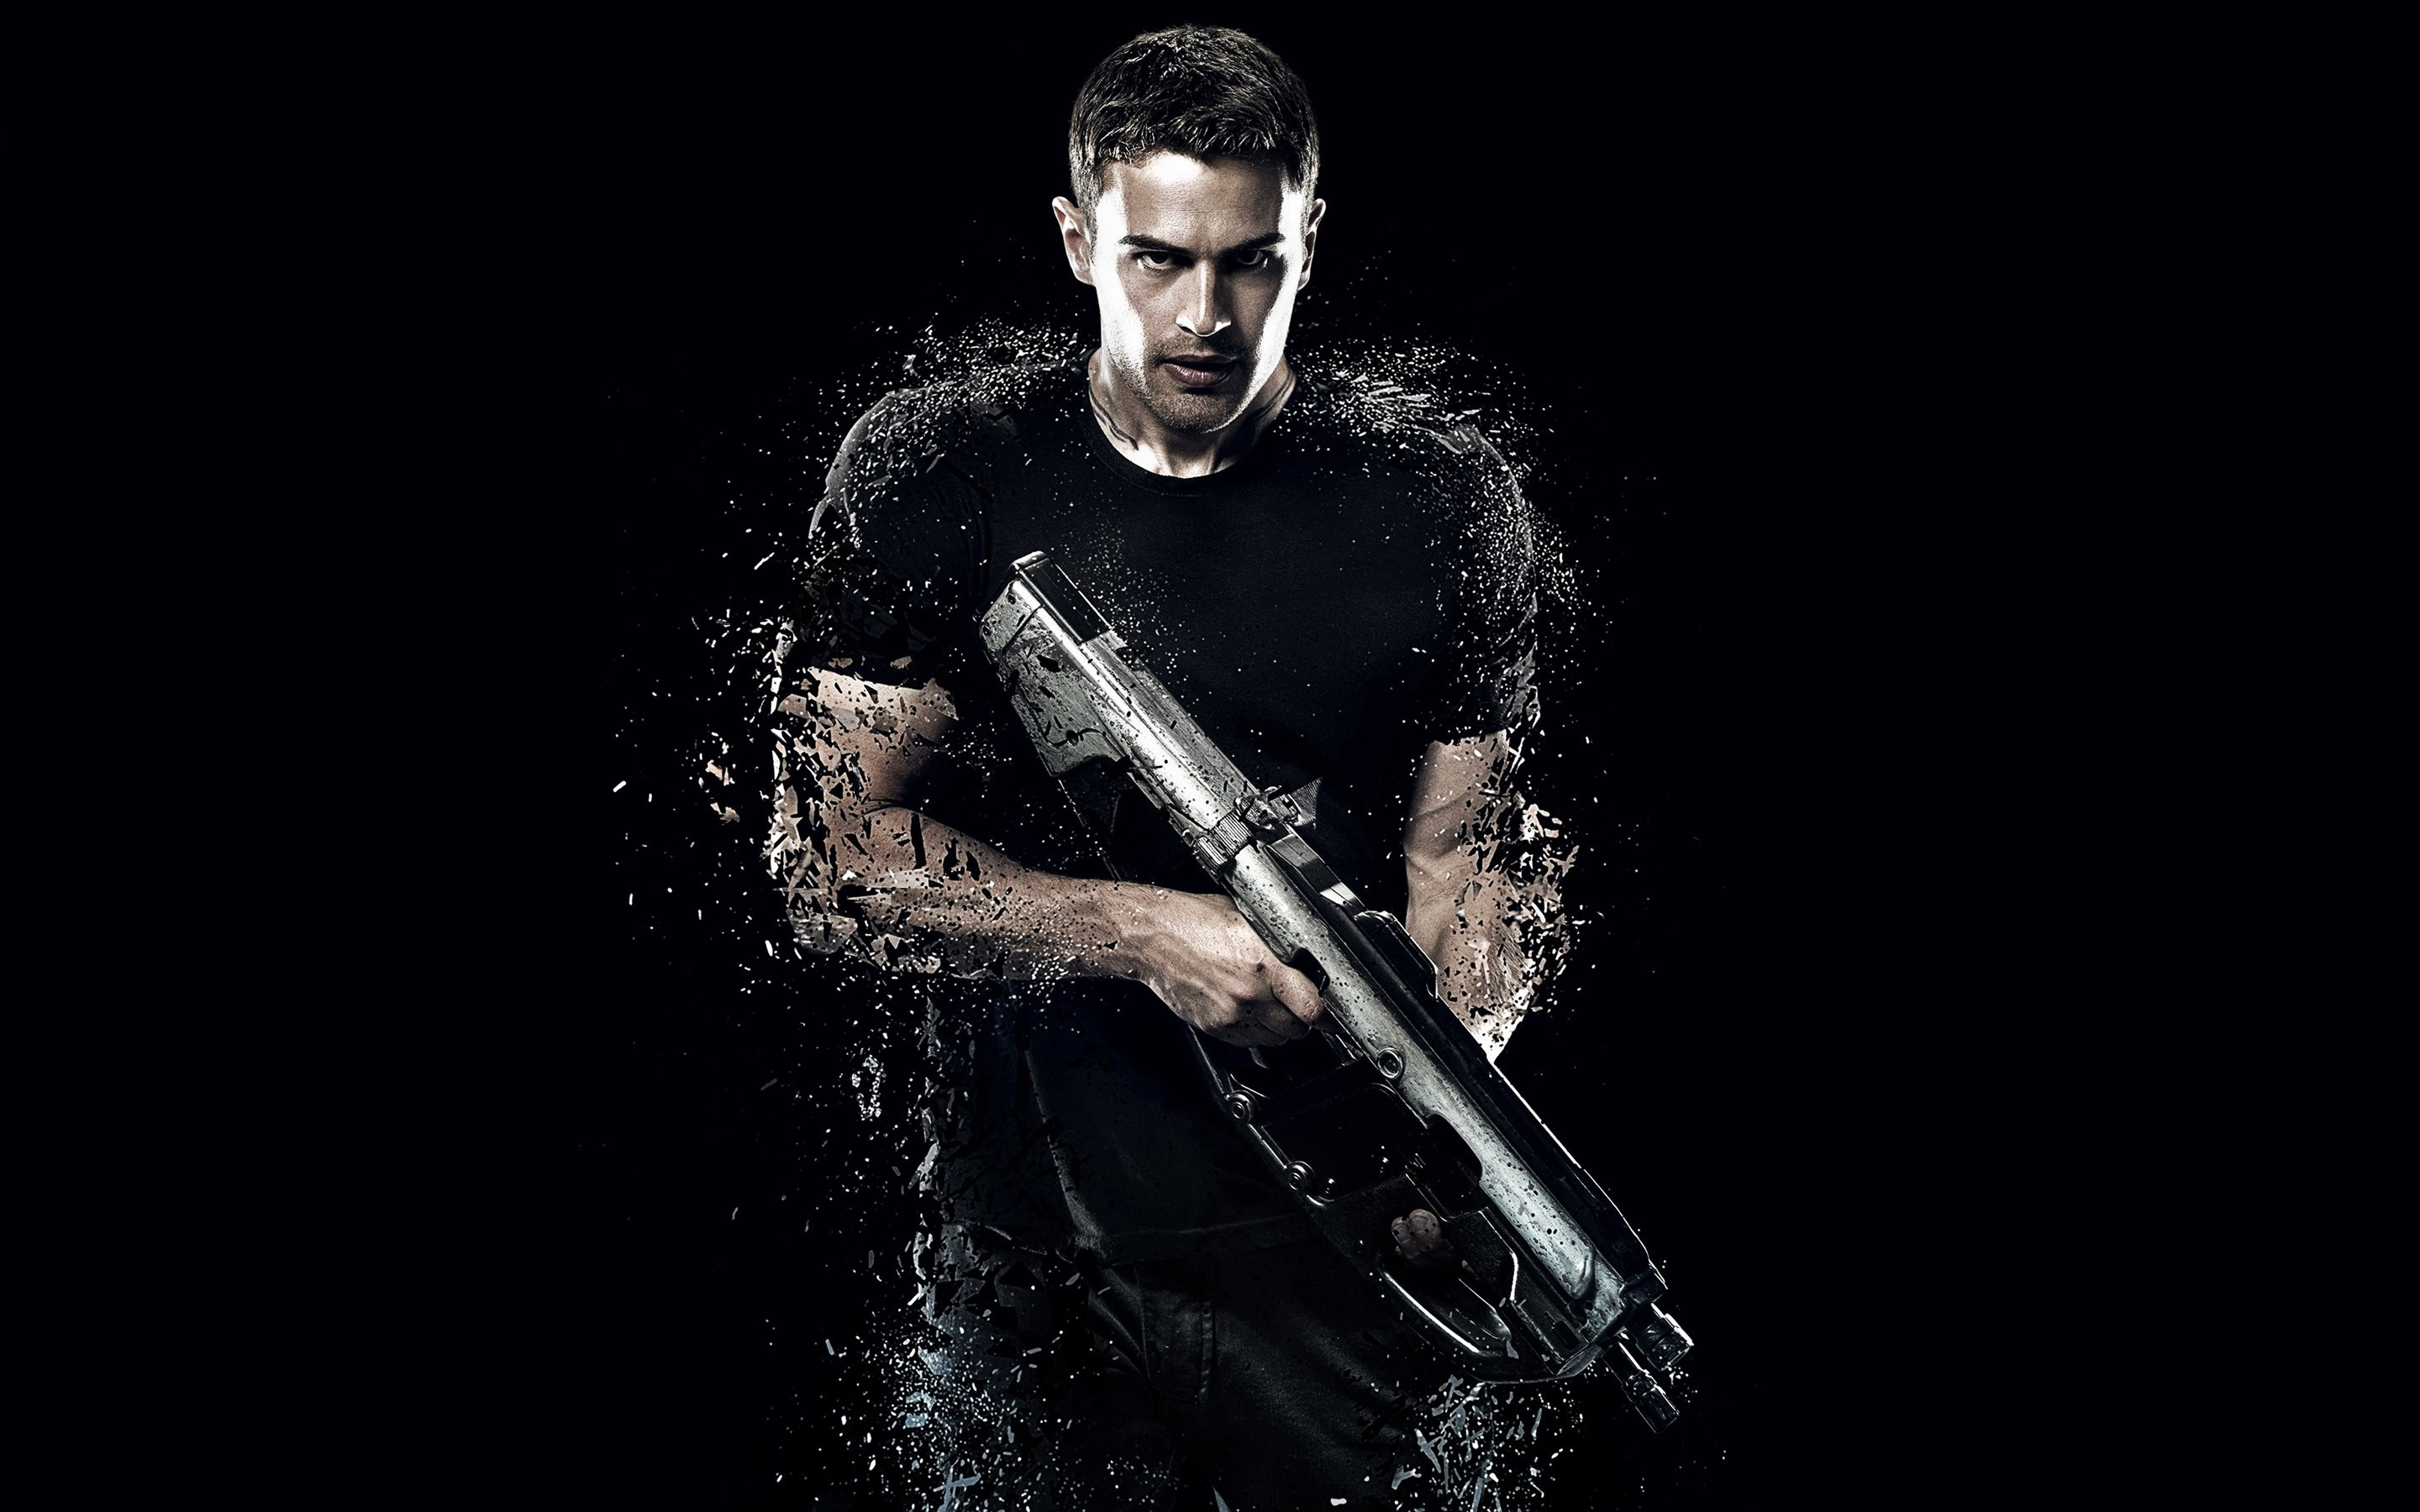 Wallpaper Theo James for Insurgent